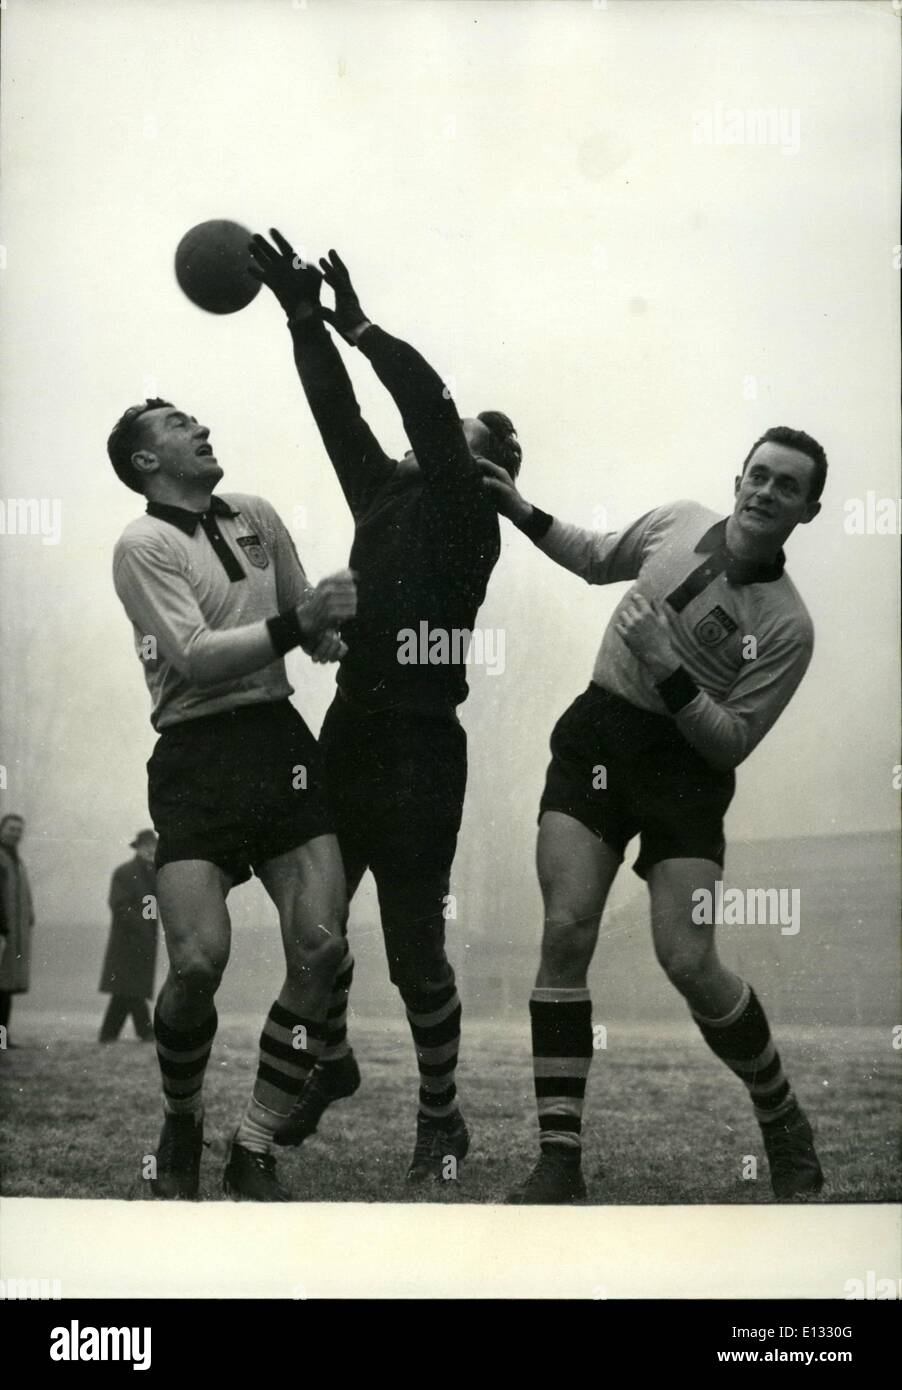 Feb. 26, 2012 - Cycling champions played a football game against sports editors at Jean Bouin, Paris today. The newsmen were beaten by 4 to 3. Bobet (left), as half back and Hassen Forder (as forward) protecting their goalkeeper, Louis Caput. Dec. 5/57 - Stock Image